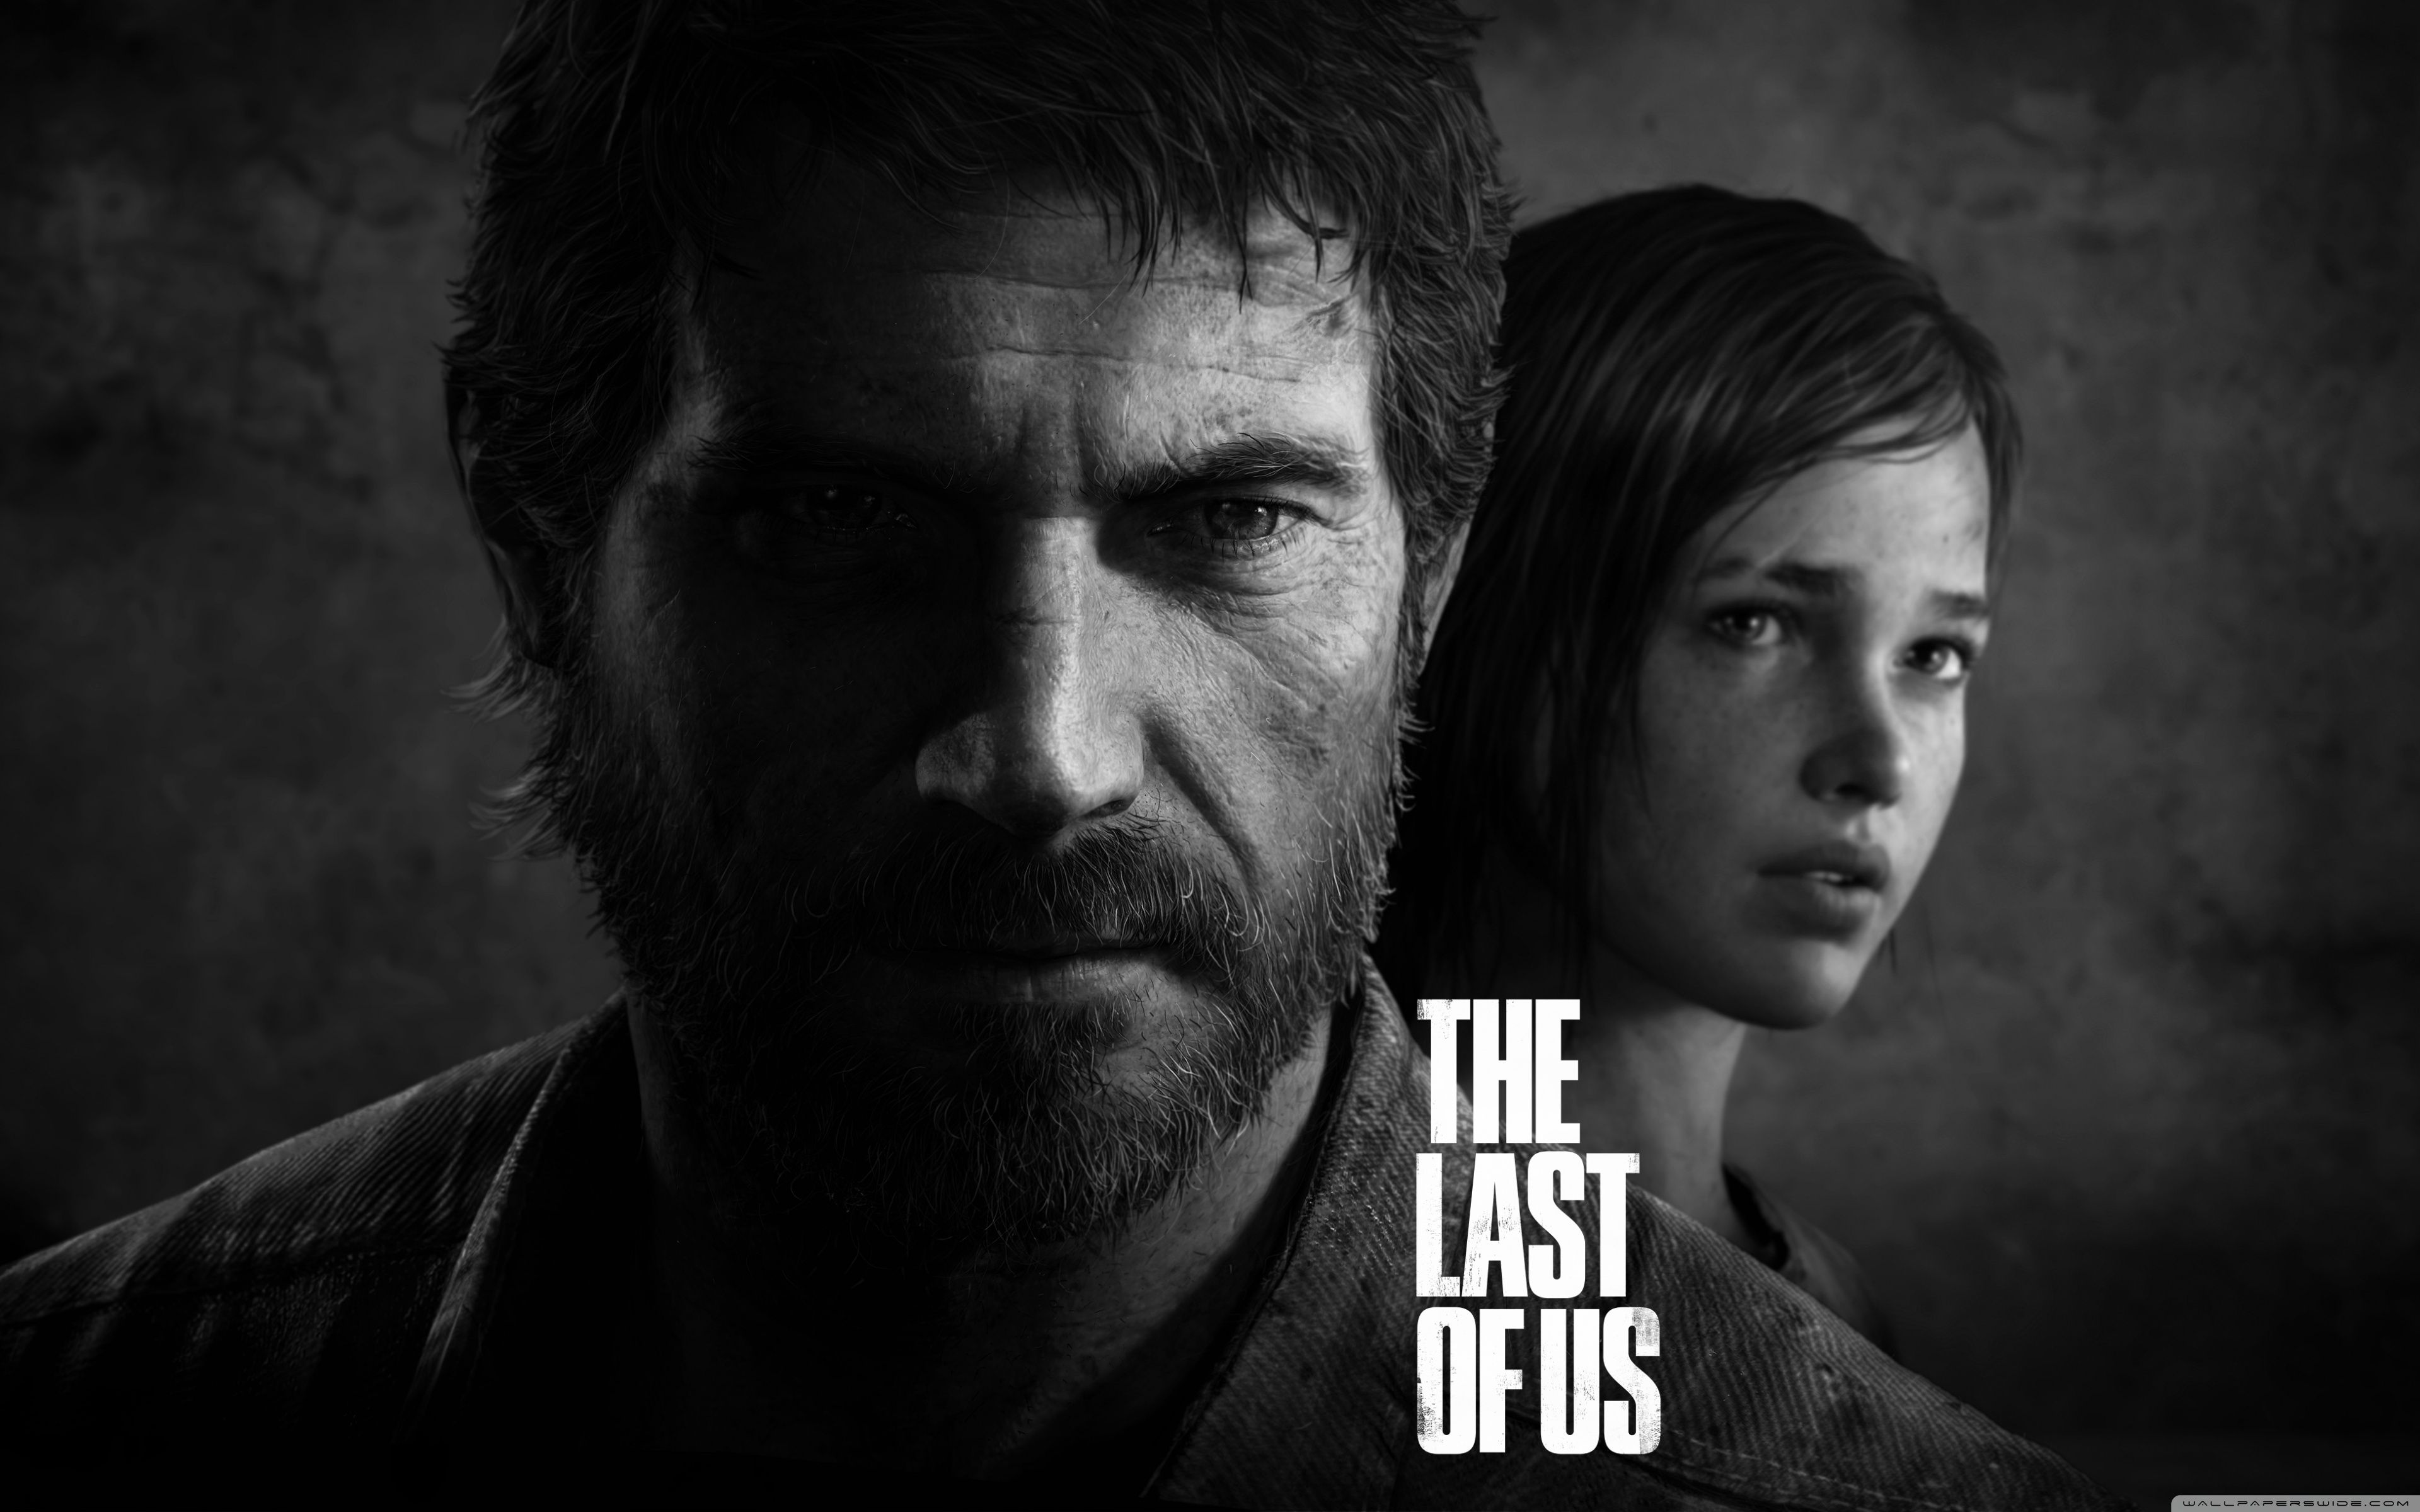 Fondo de pantalla de The Last of Us 3840x2400